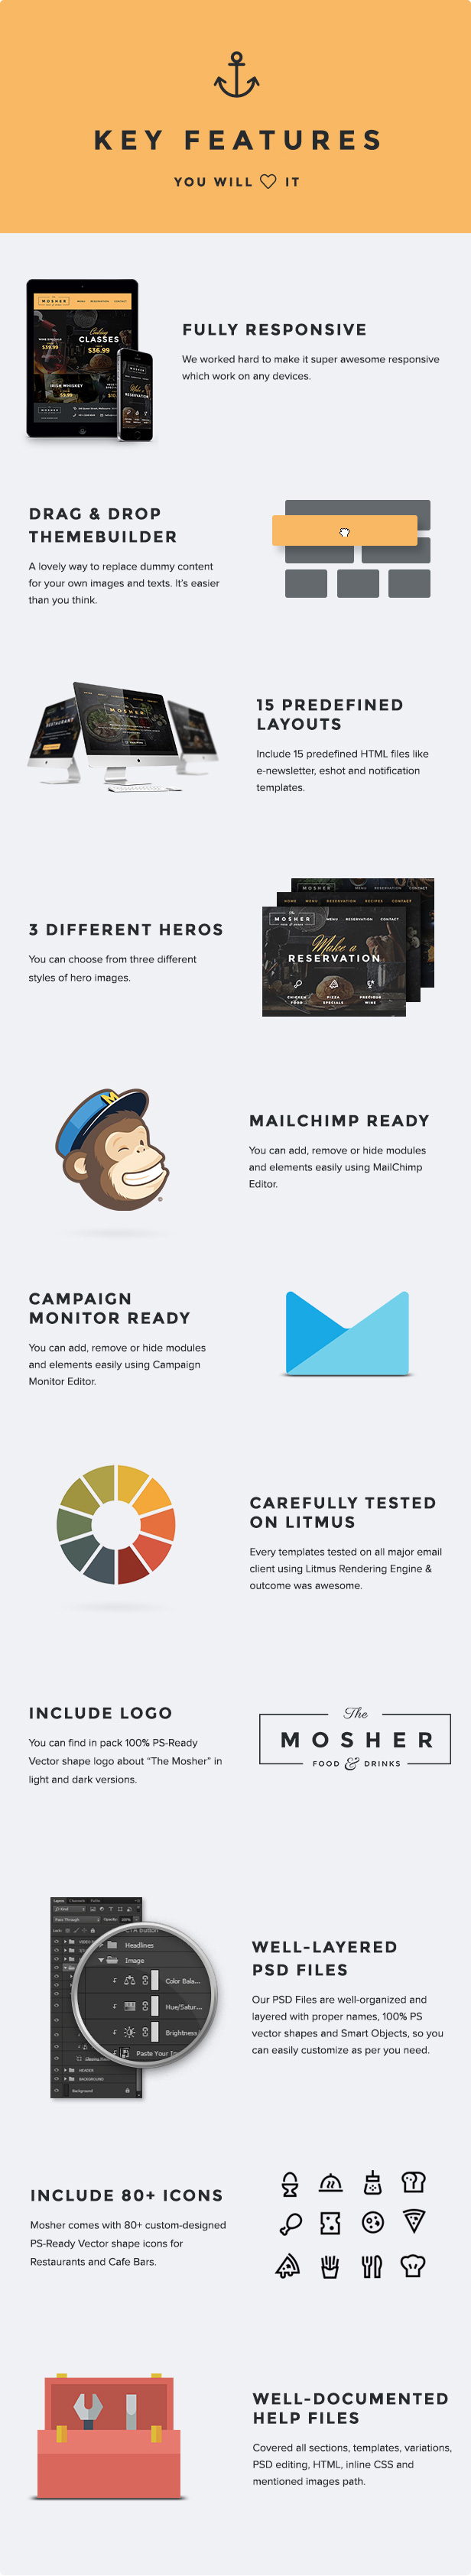 Mosher - Promotional Email Pack + Builder Access